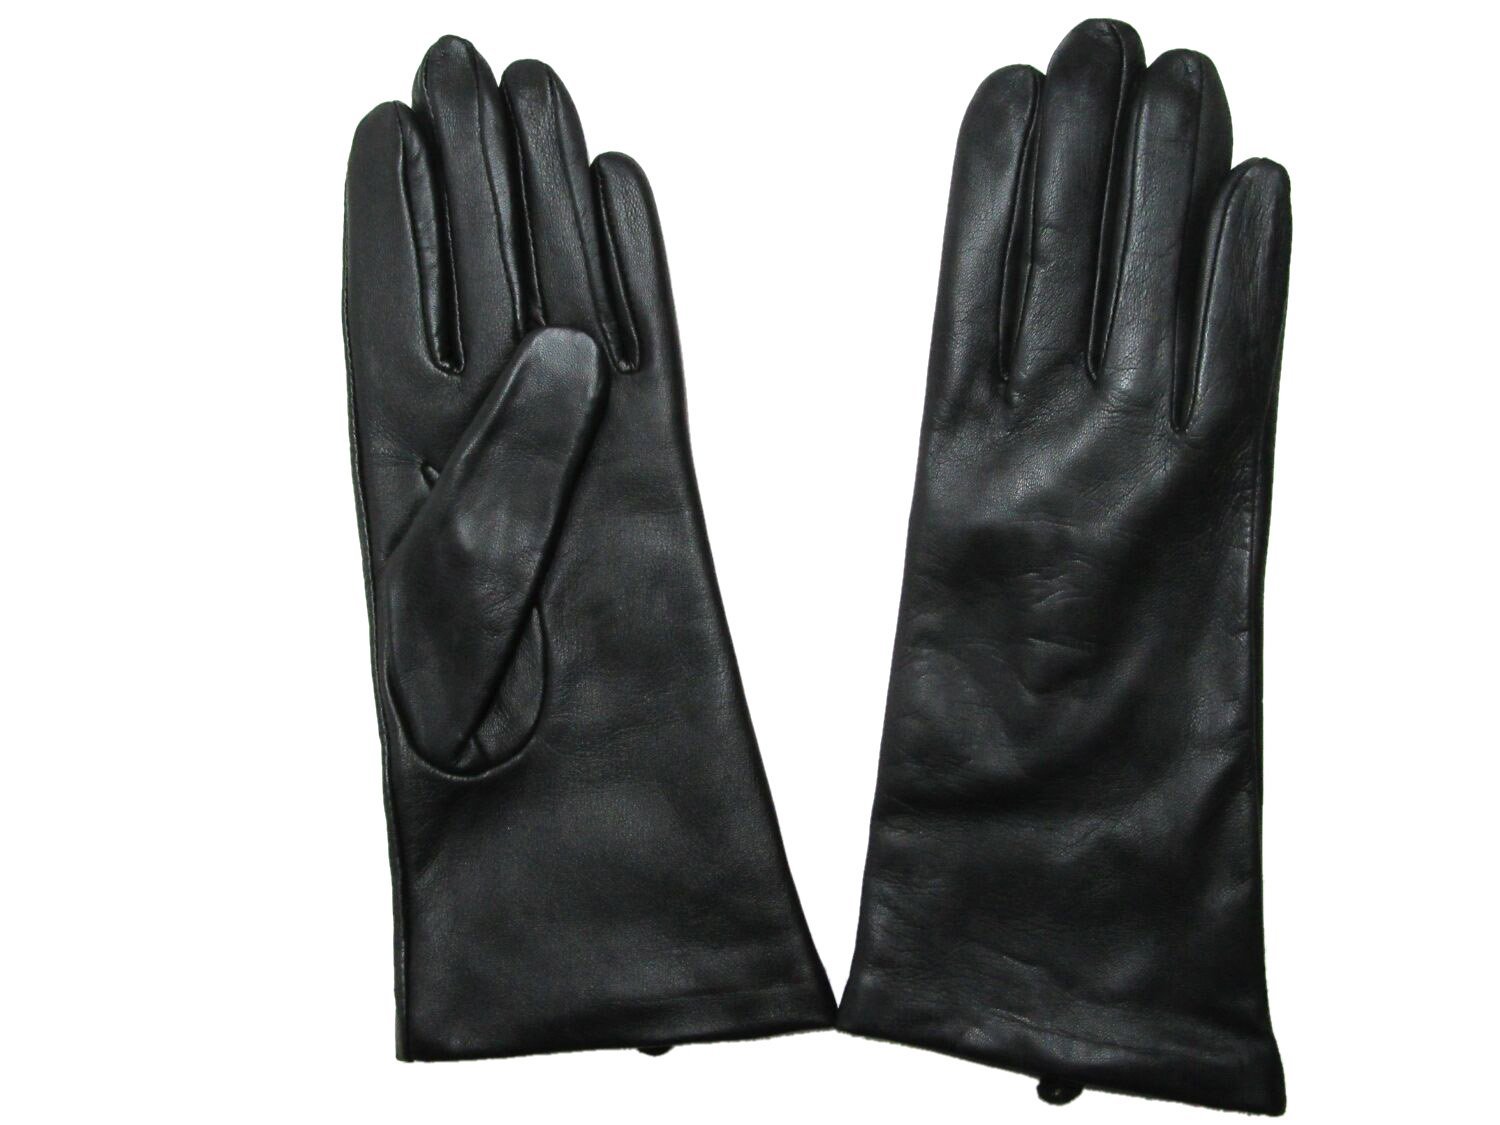 Fownes Women's Cashmere Lined Black Conductive Lambskin Leather Gloves 8/XL by Fownes Brothers (Image #5)